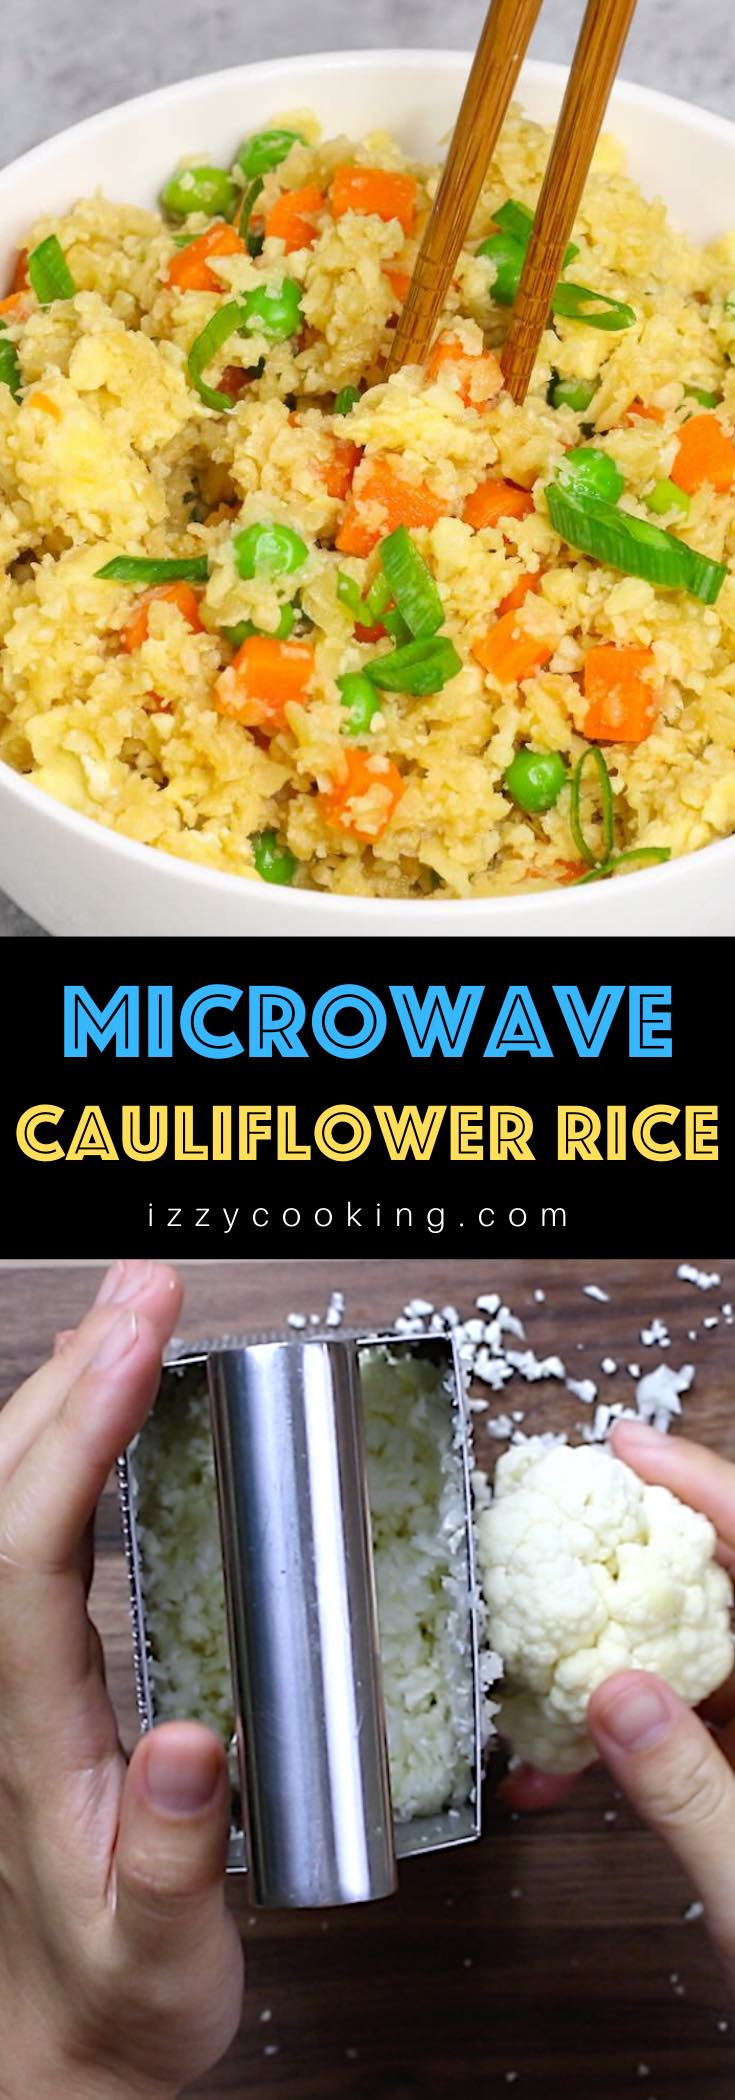 This Easy Microwave Cauliflower Rice recipe makes light and fluffy cauliflower rice in just a few minutes. An amazingly healthy and low carb twist on takeout fried rice. It's a perfect grain-free and quick side dish!